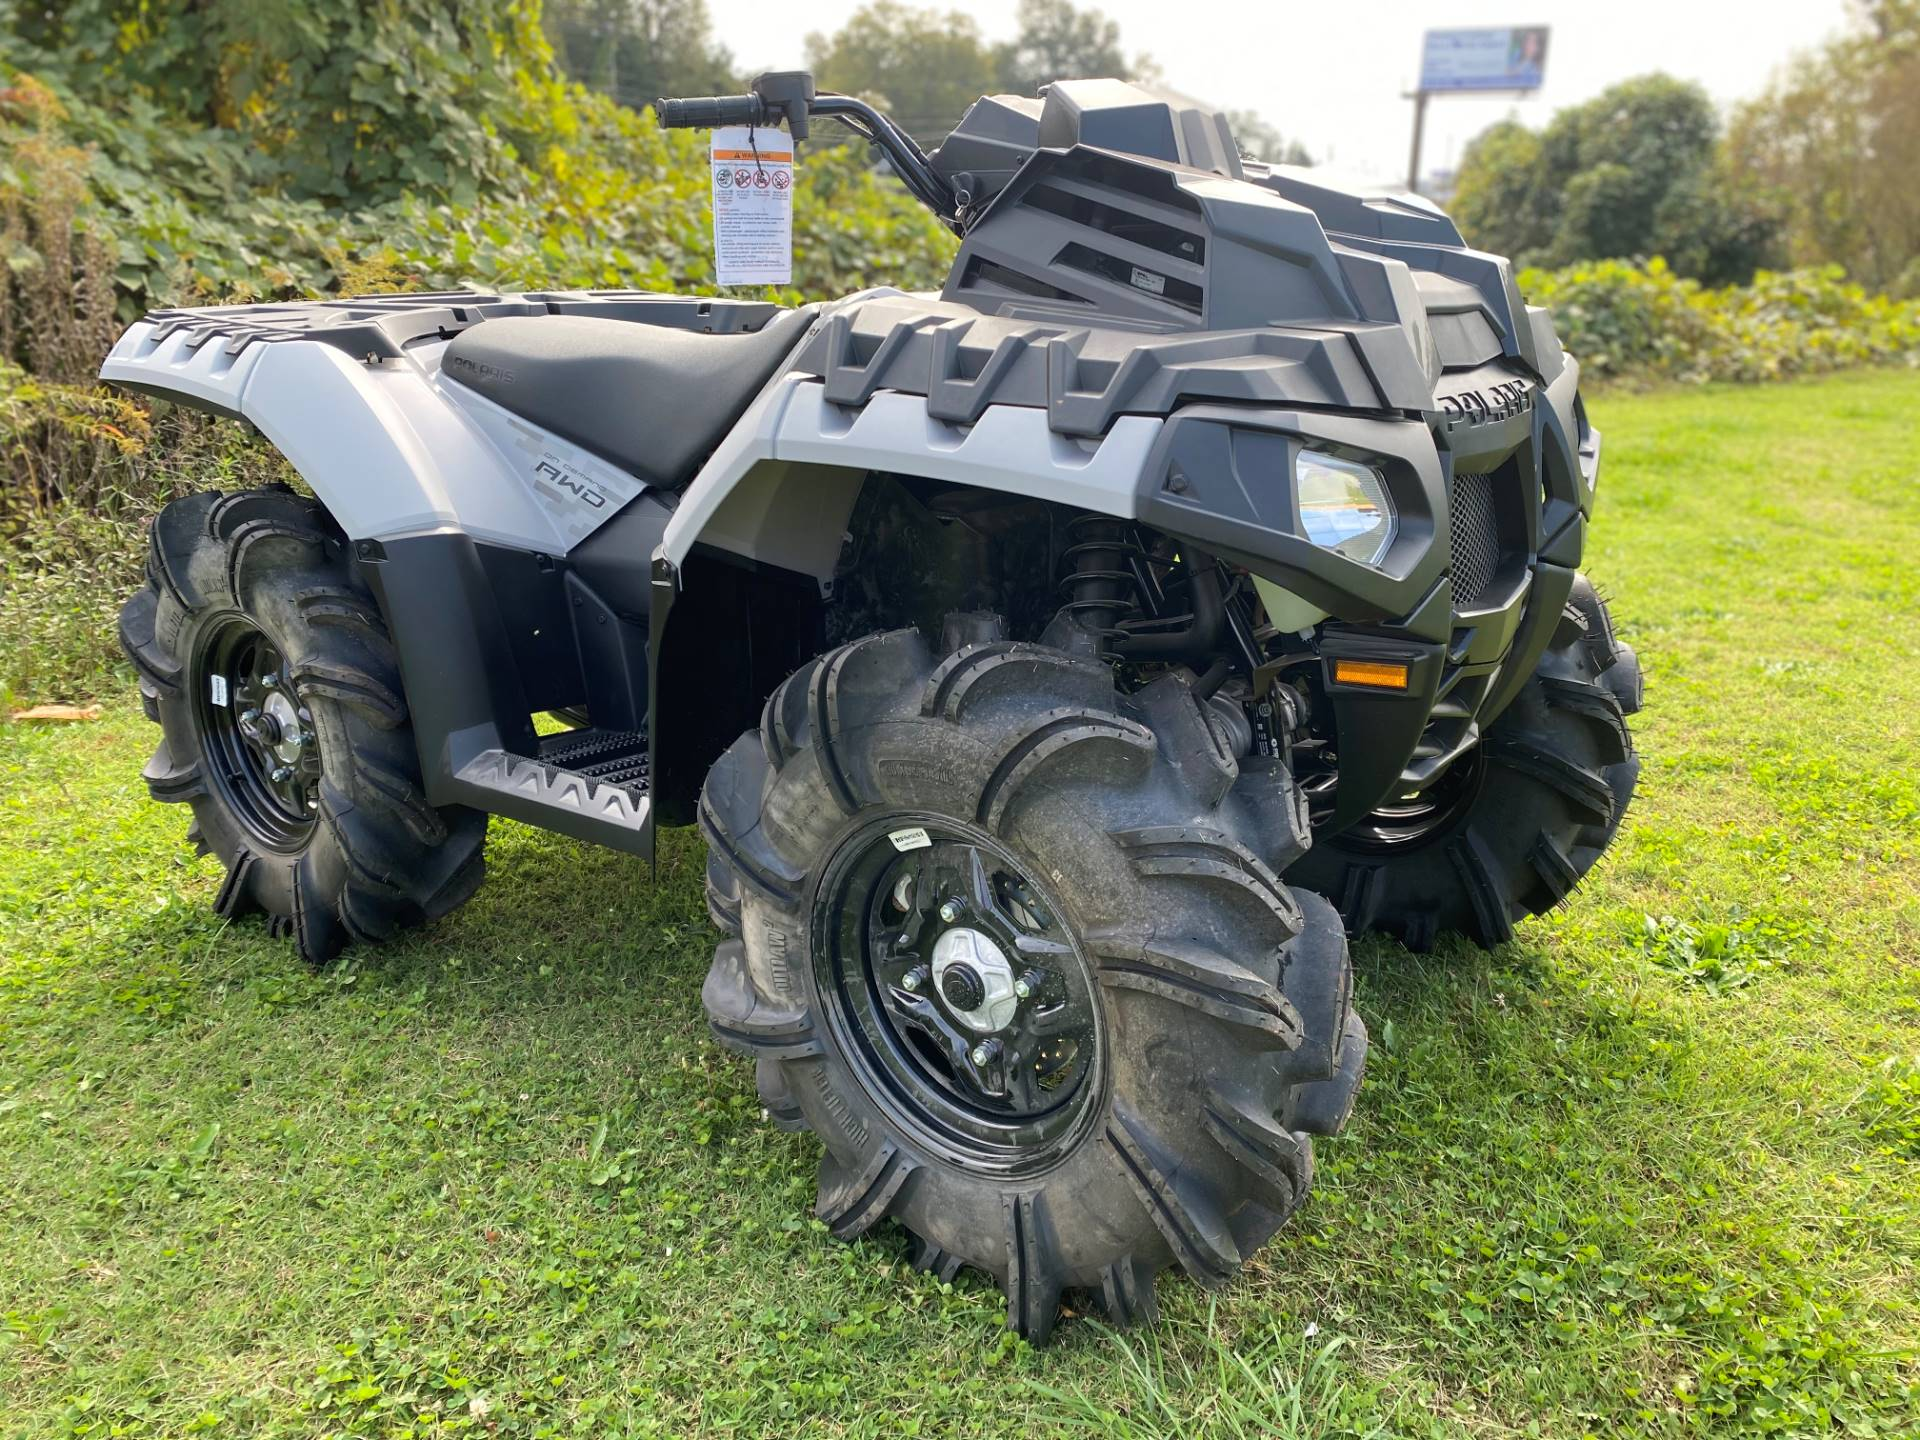 2021 Polaris Sportsman 850 High Lifter Edition in Greer, South Carolina - Photo 12